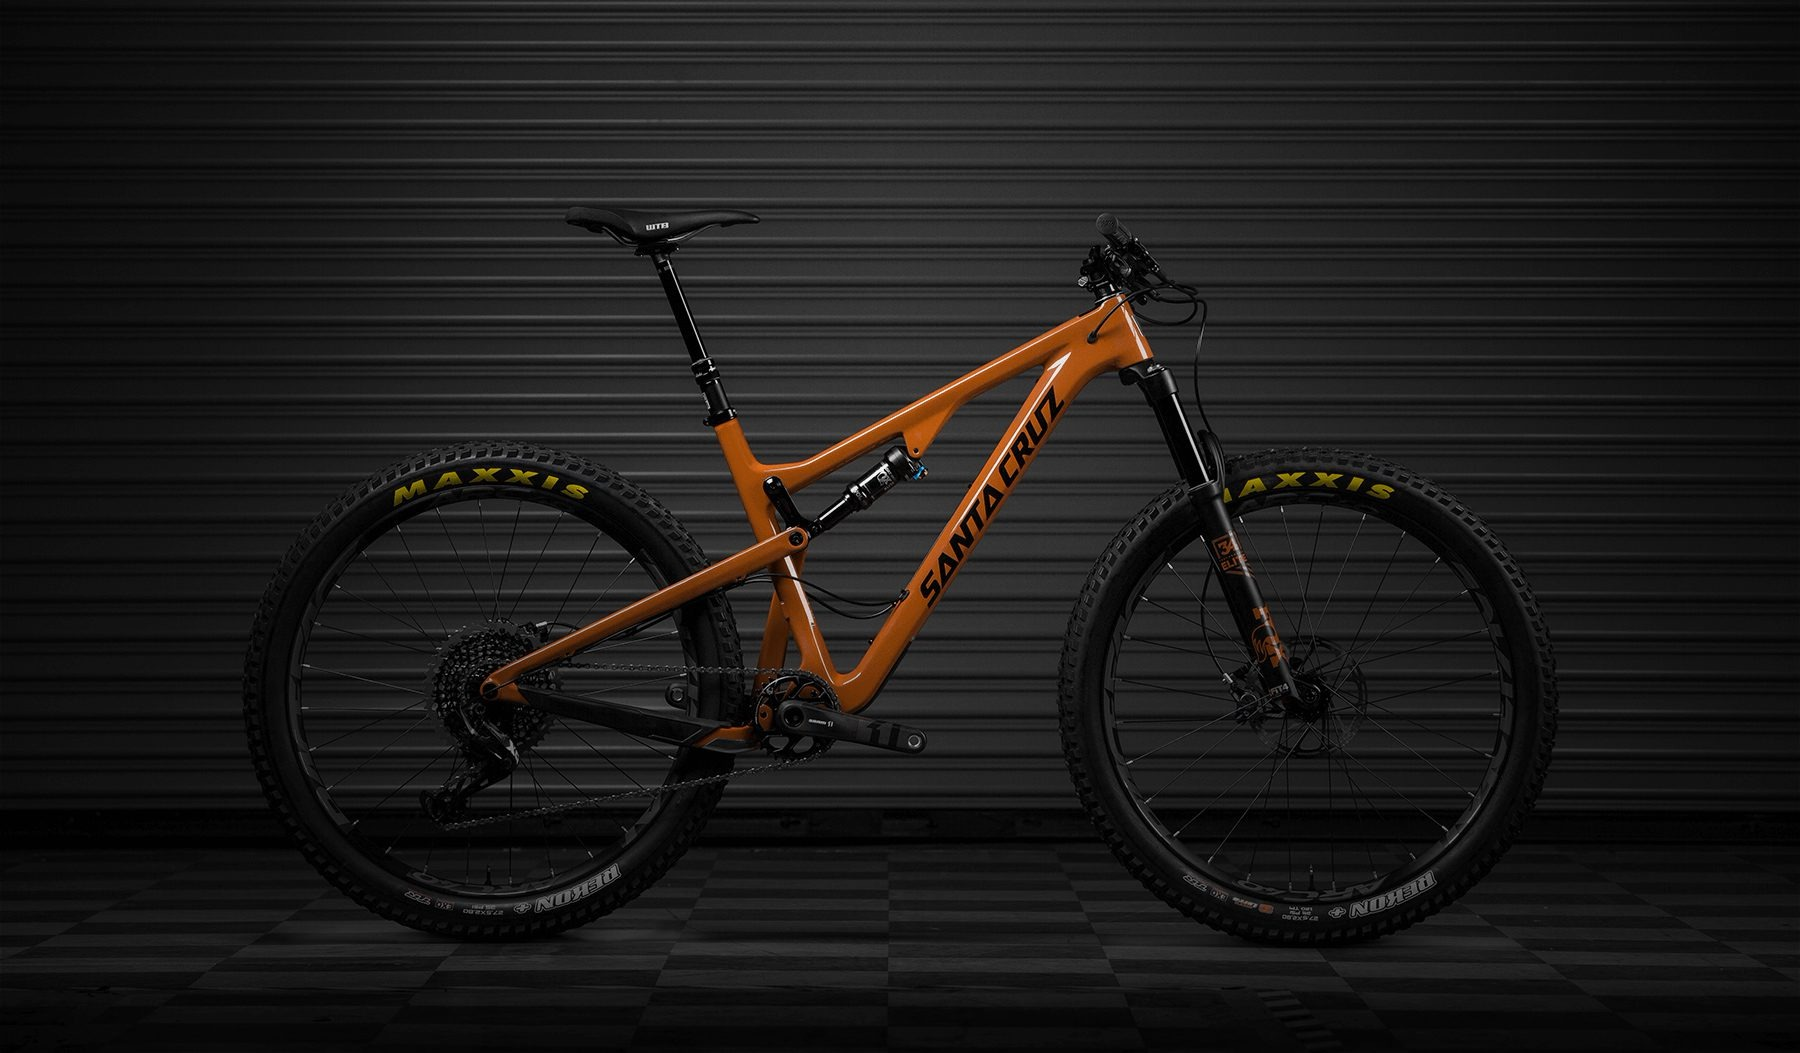 2018 Santa Cruz Tallboy Trail bike